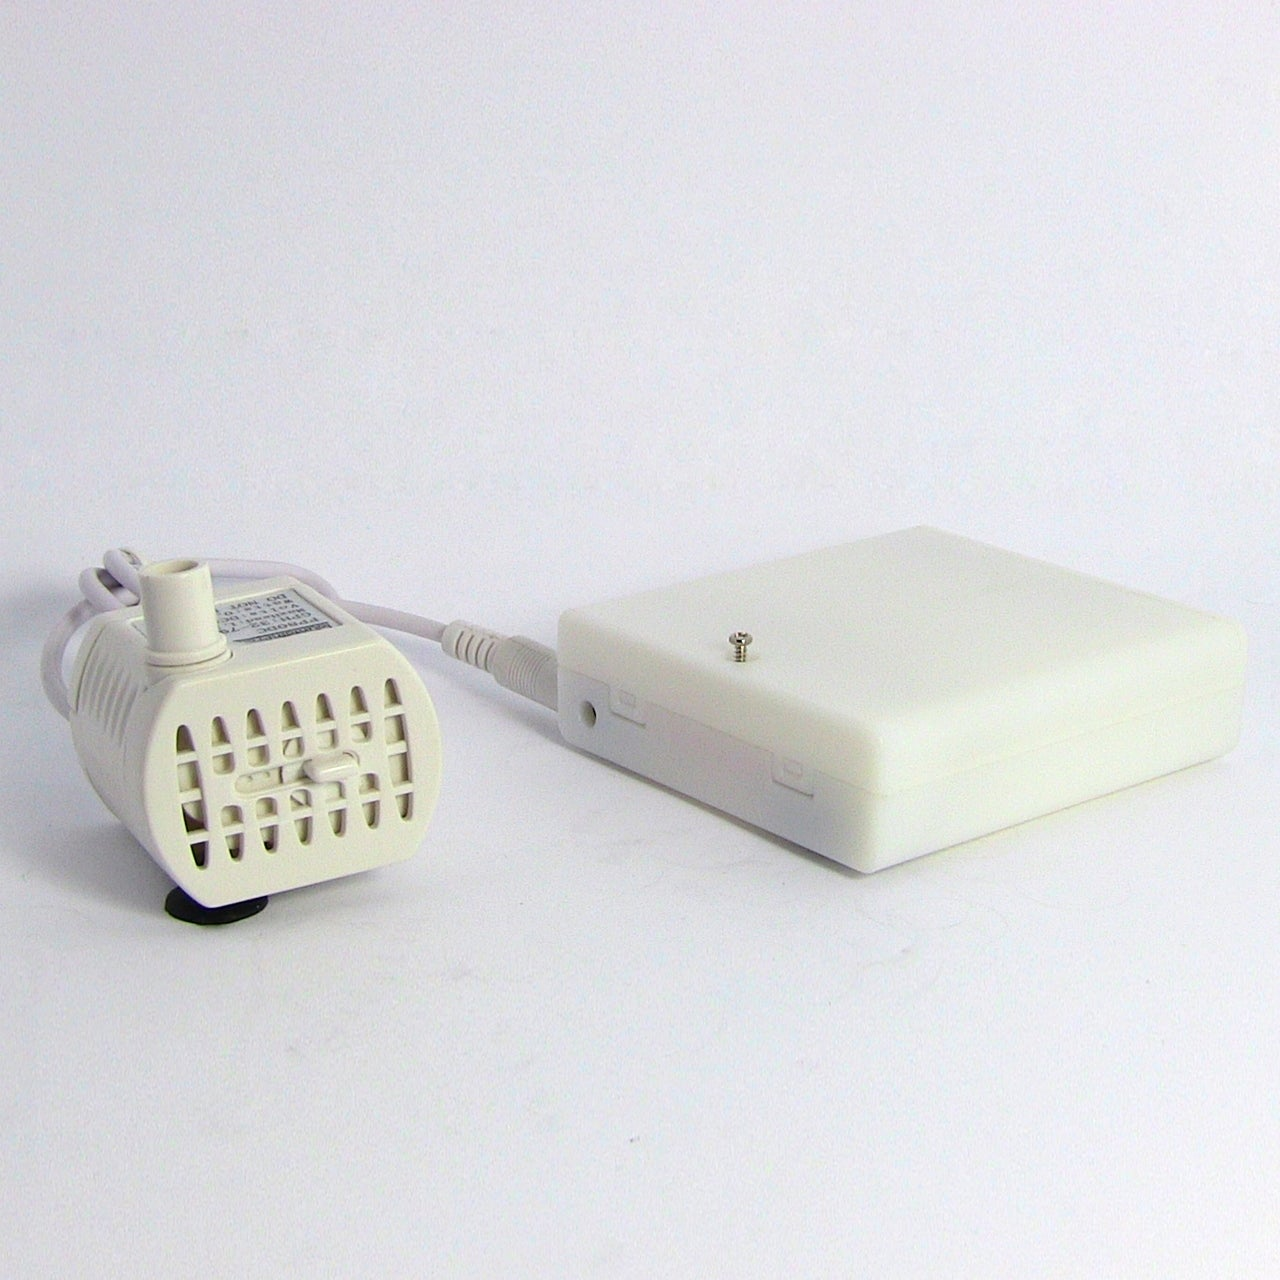 Fountain Pro Battery Operated Submersible Fountain Pump - White - Thumbnail 0